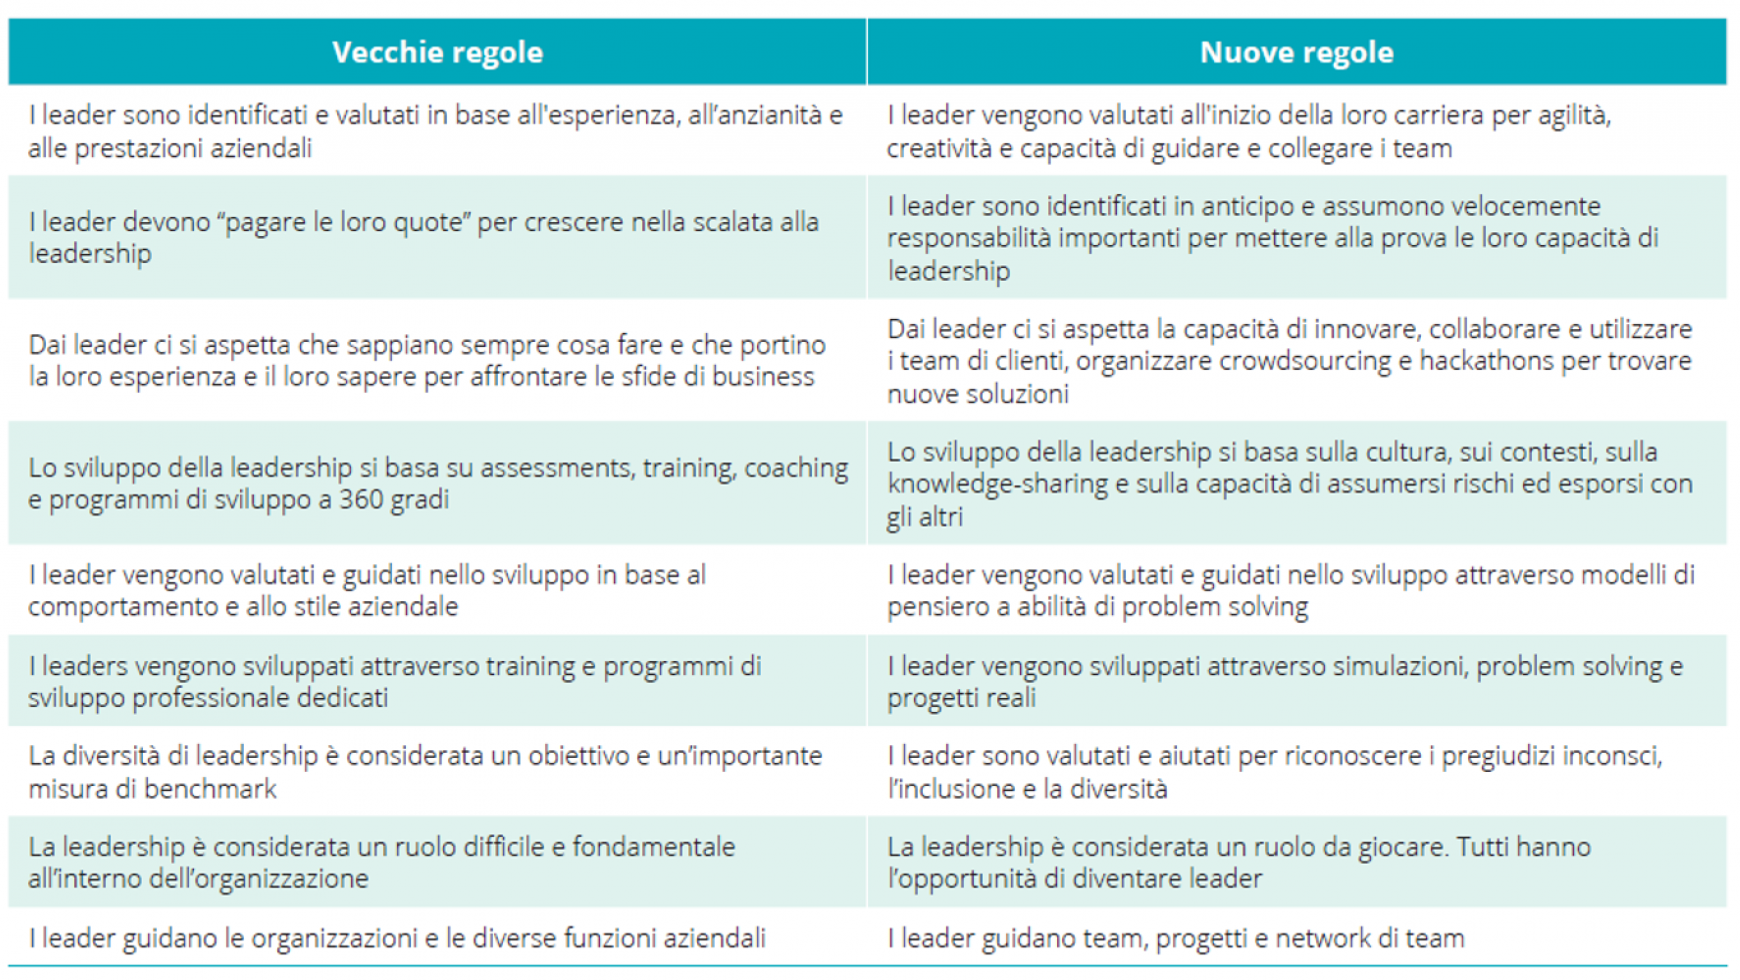 La Leadership Digitale